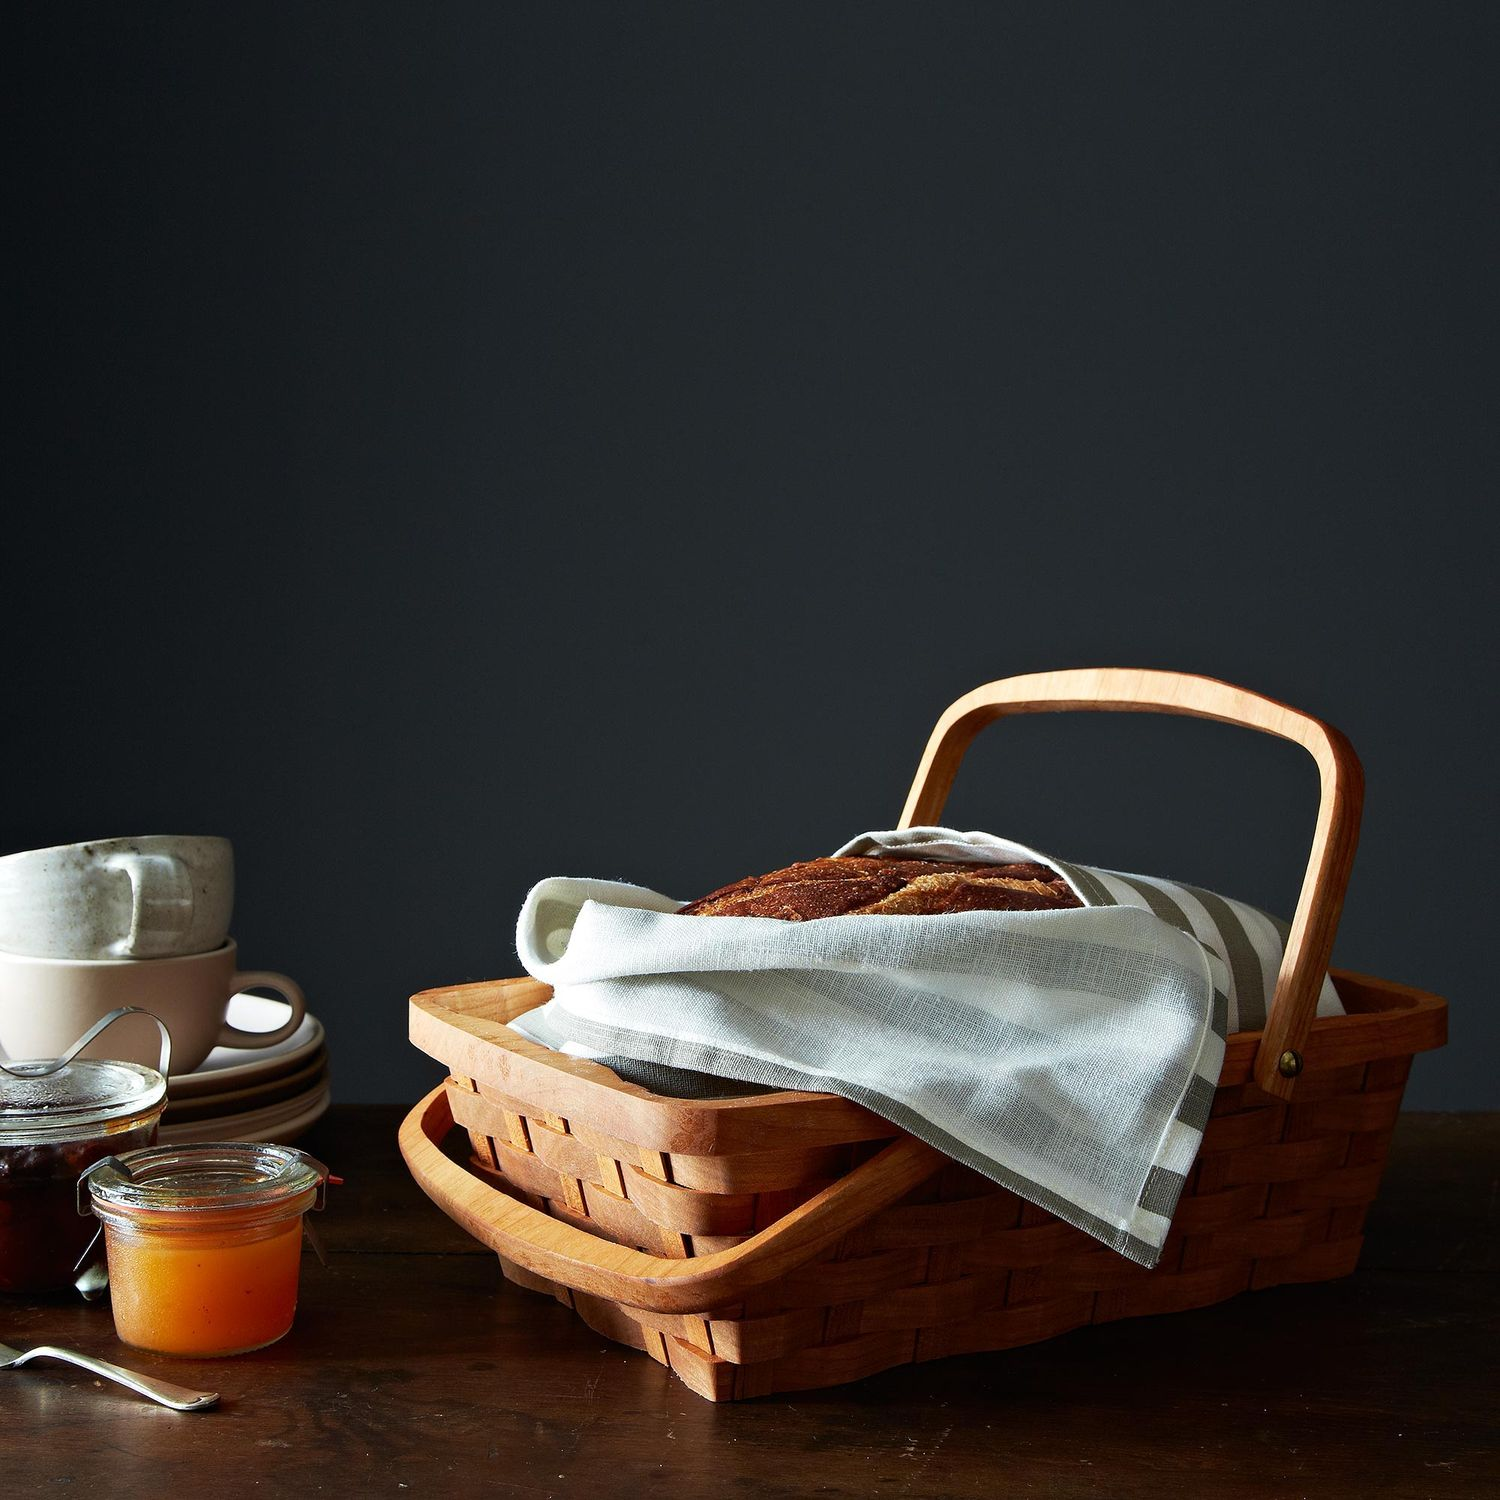 Wood Bread Serving Basket With Handles On Food52